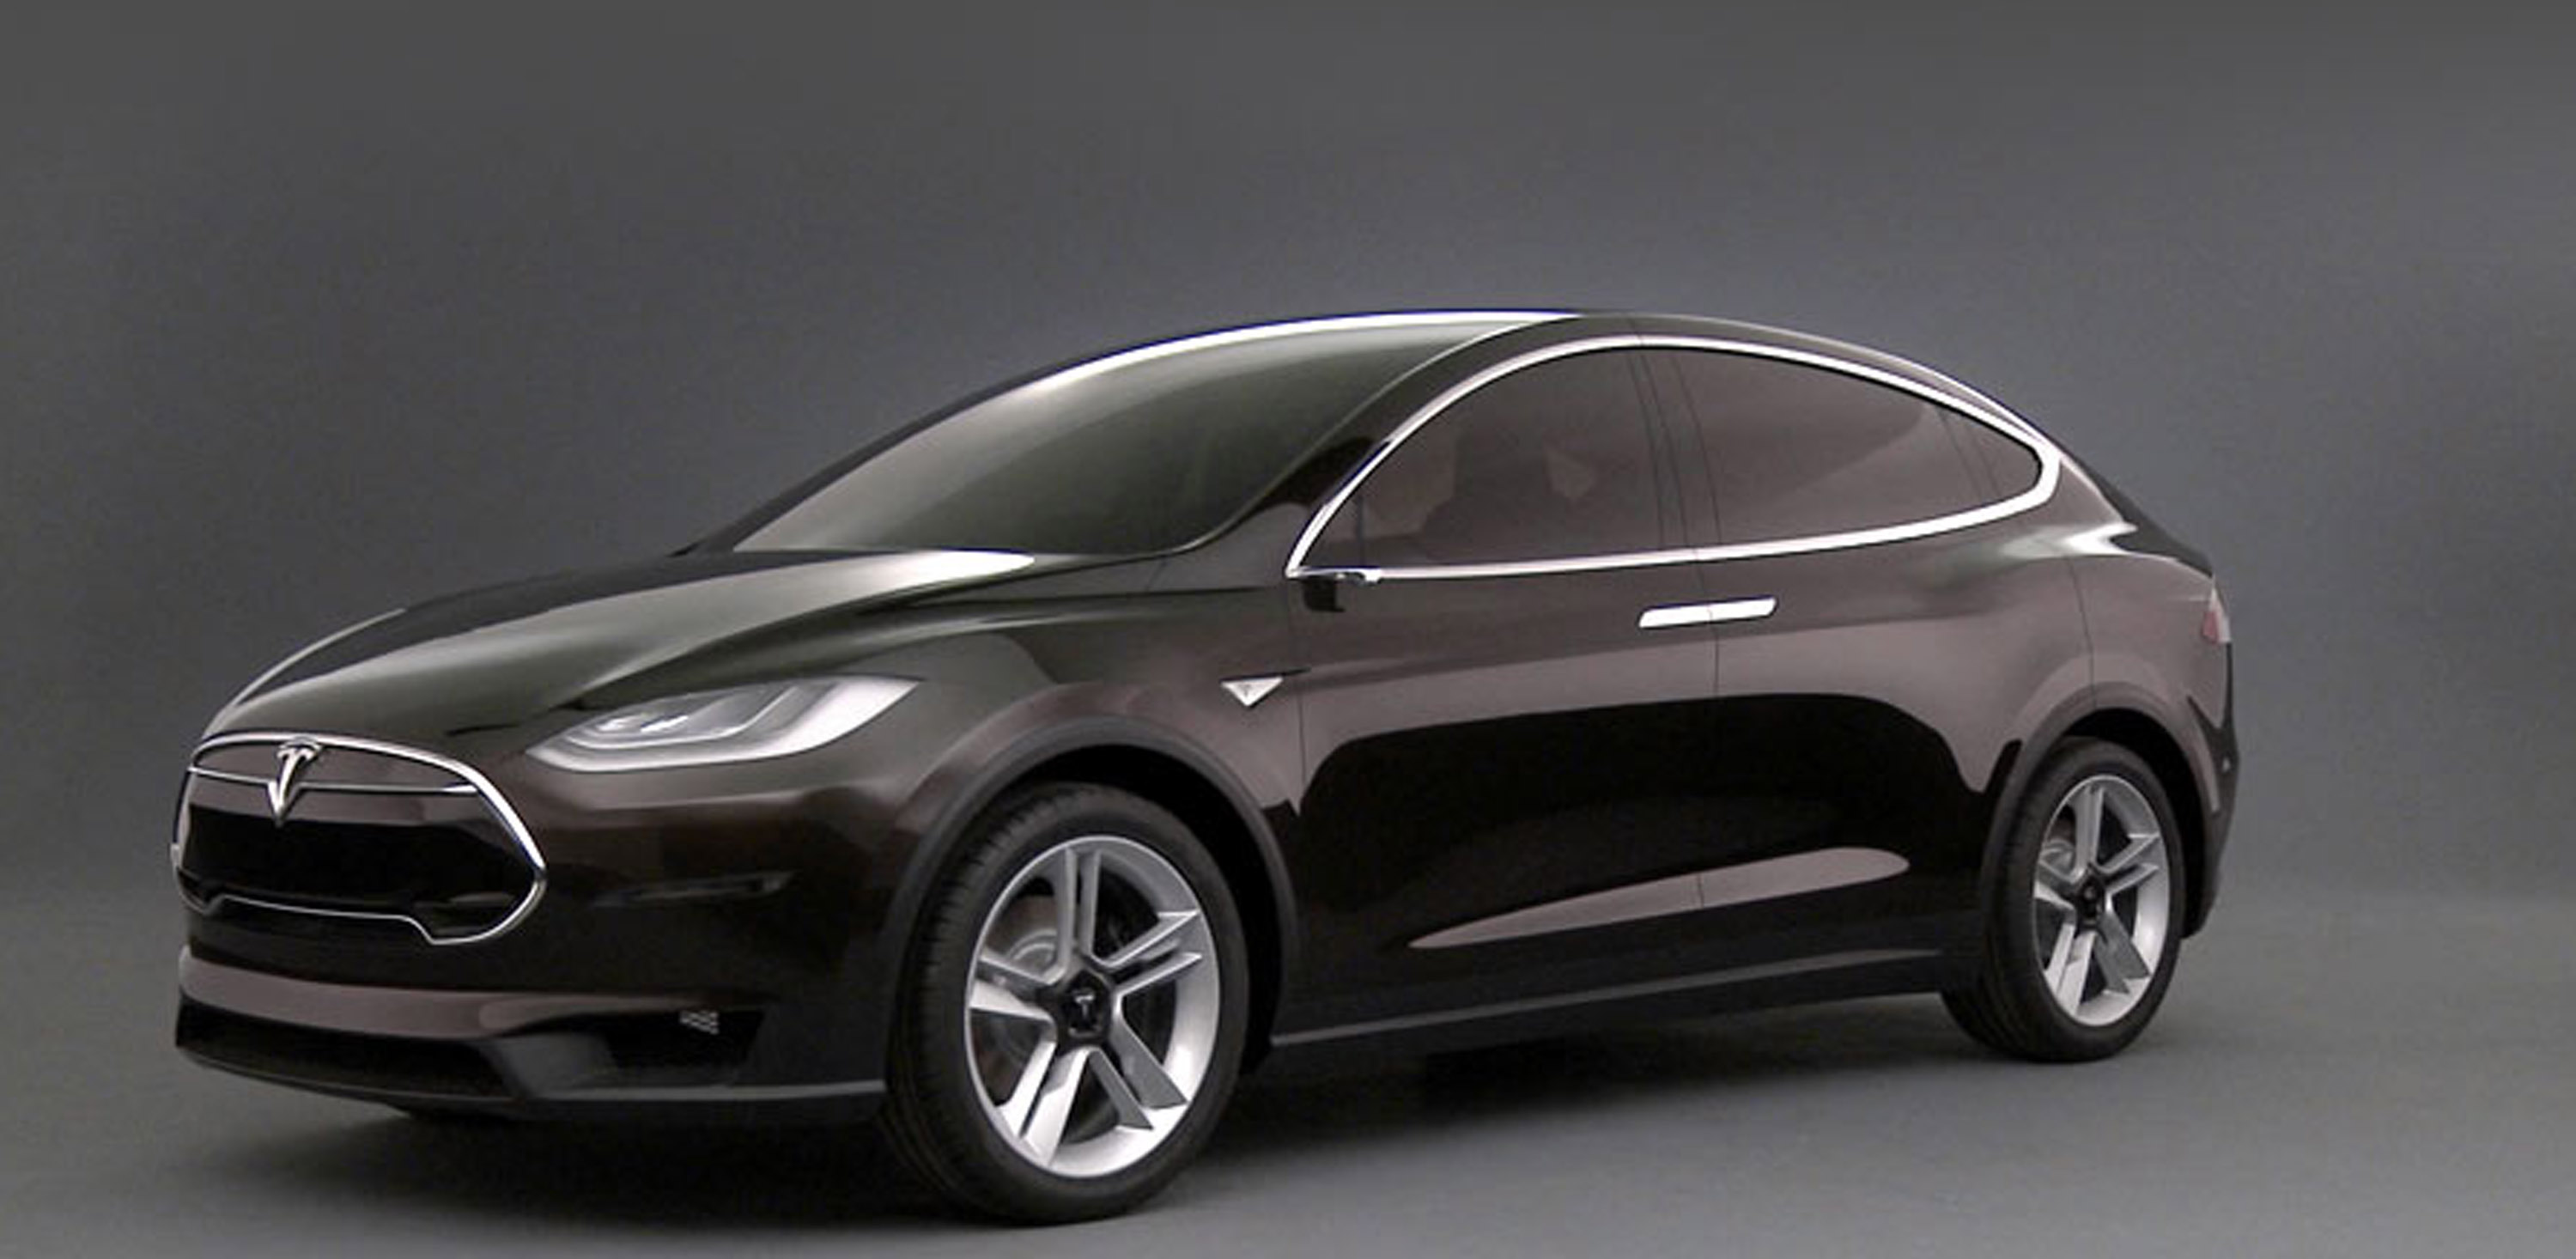 2015 tesla model x comes with revolutionary features. Black Bedroom Furniture Sets. Home Design Ideas